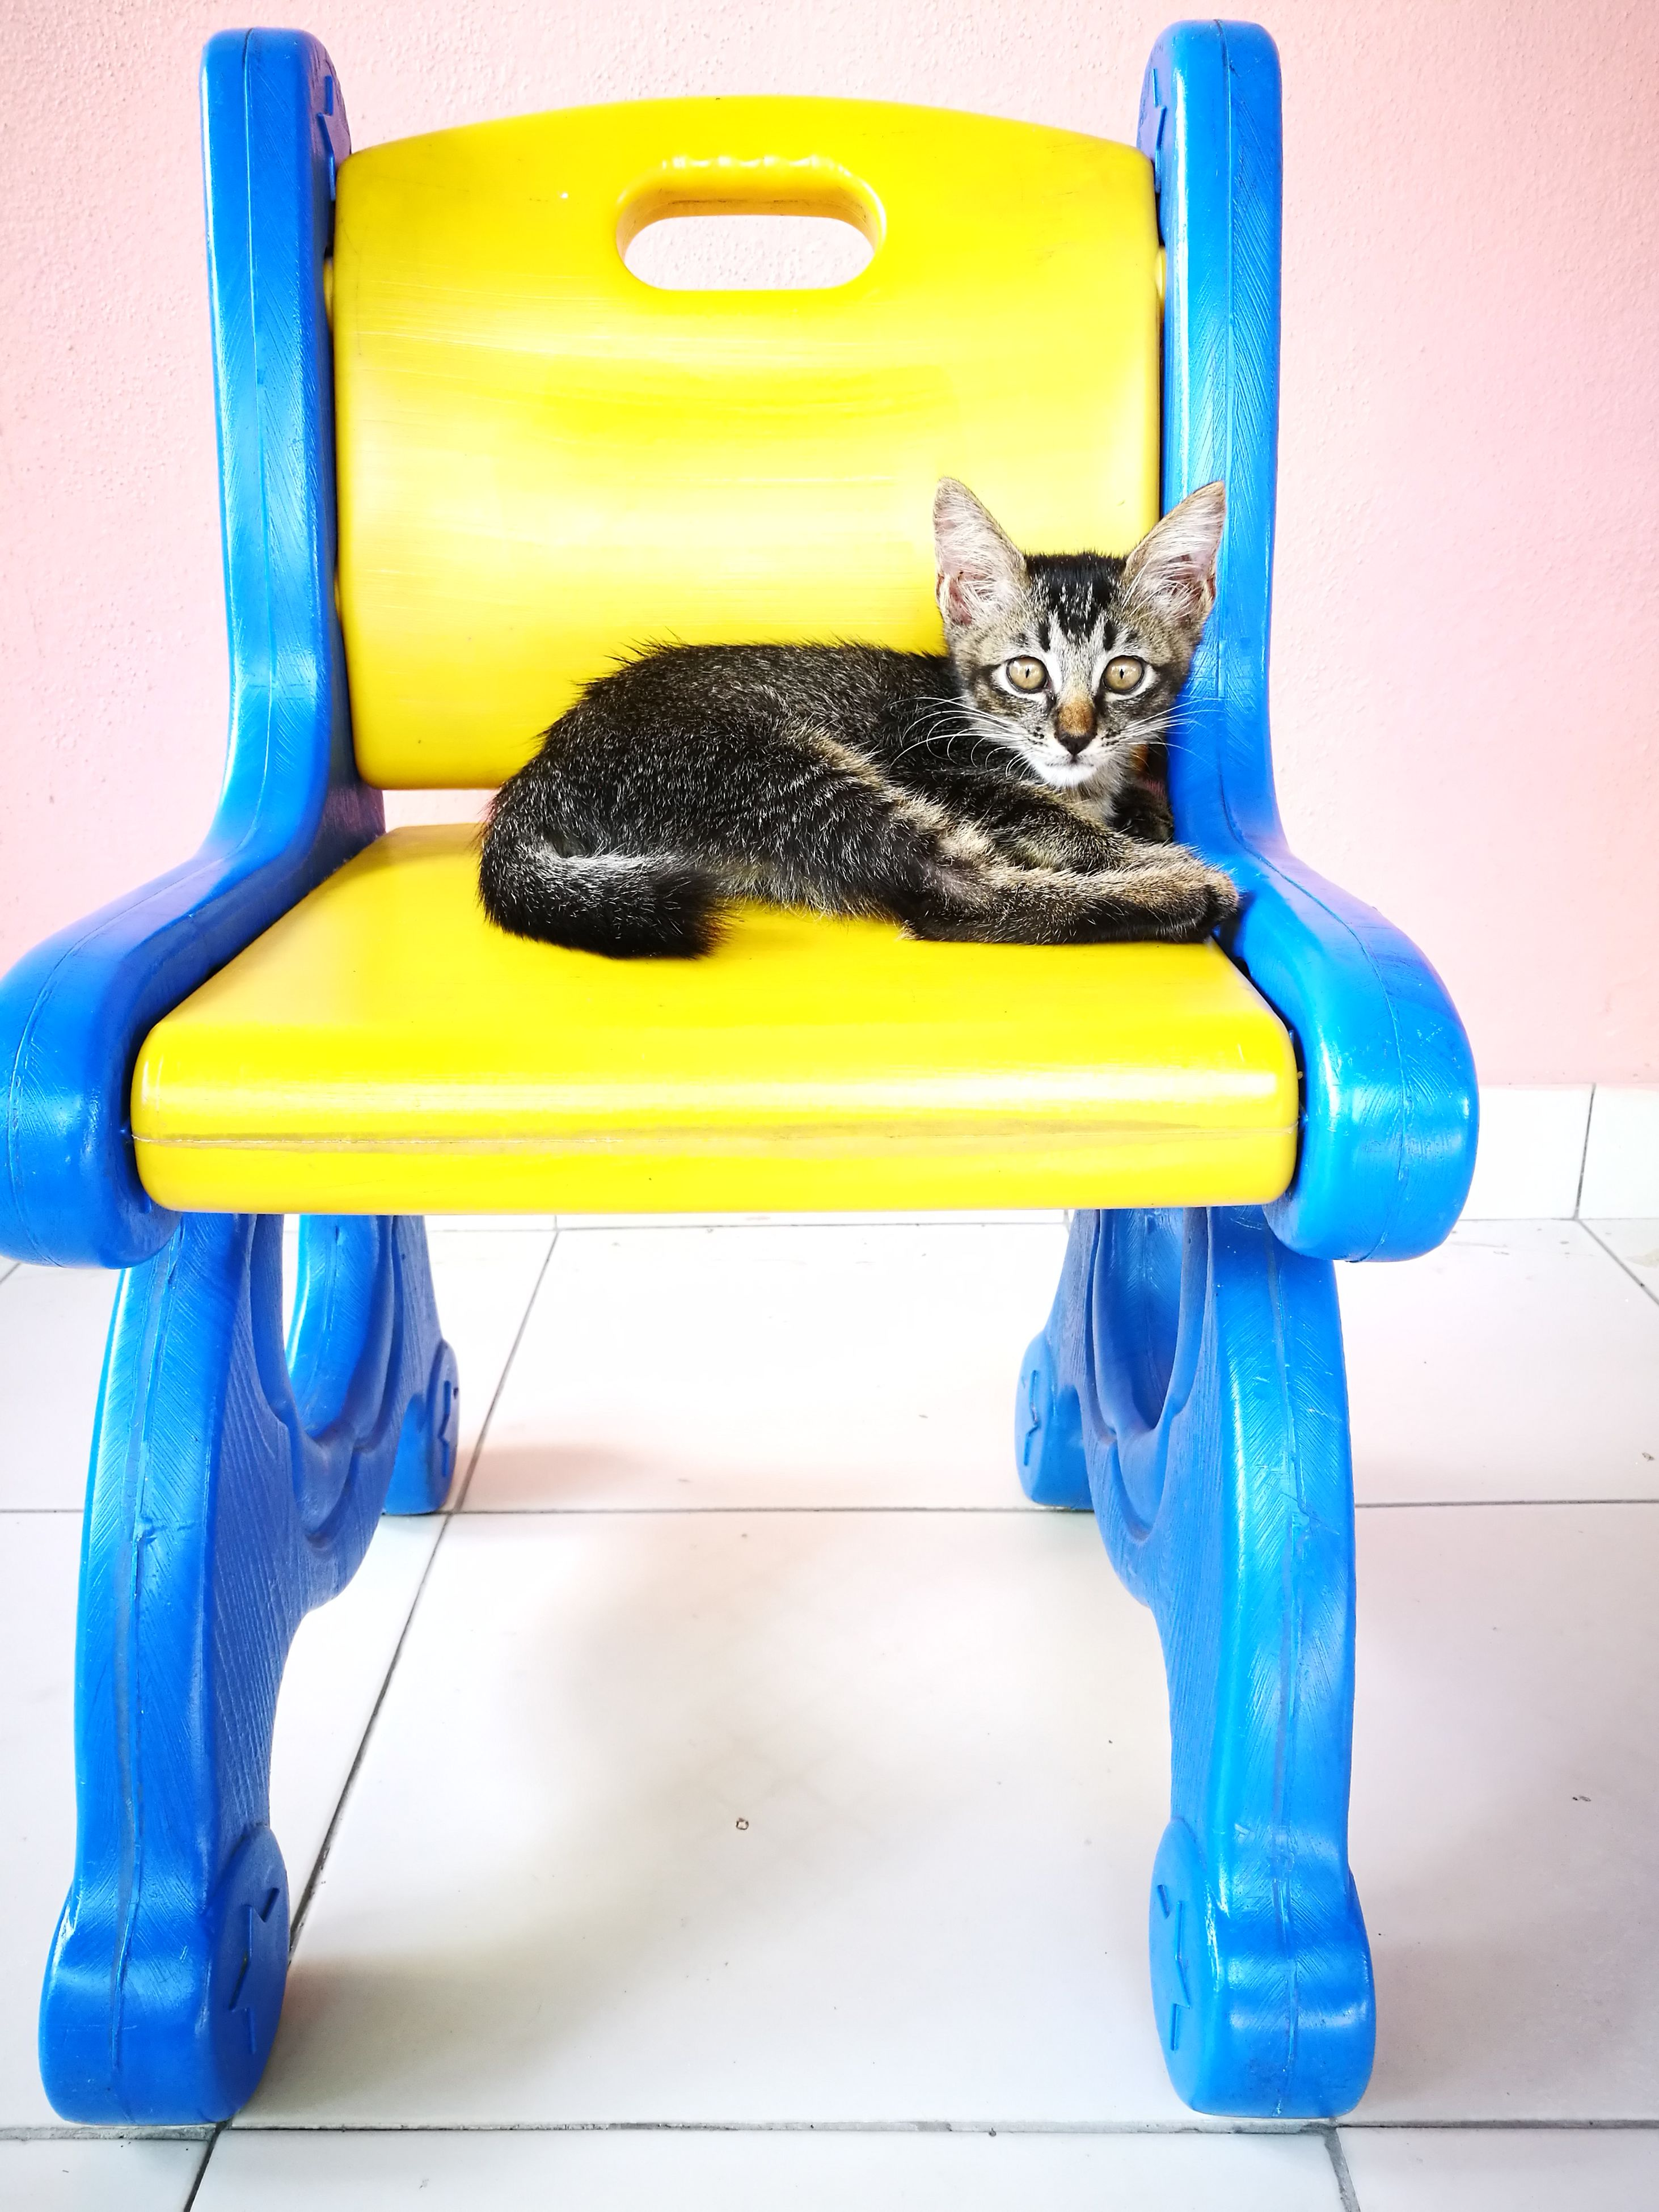 pets, domestic cat, domestic animals, animal themes, mammal, one animal, blue, feline, sitting, yellow, no people, looking at camera, indoors, full length, multi colored, day, portrait